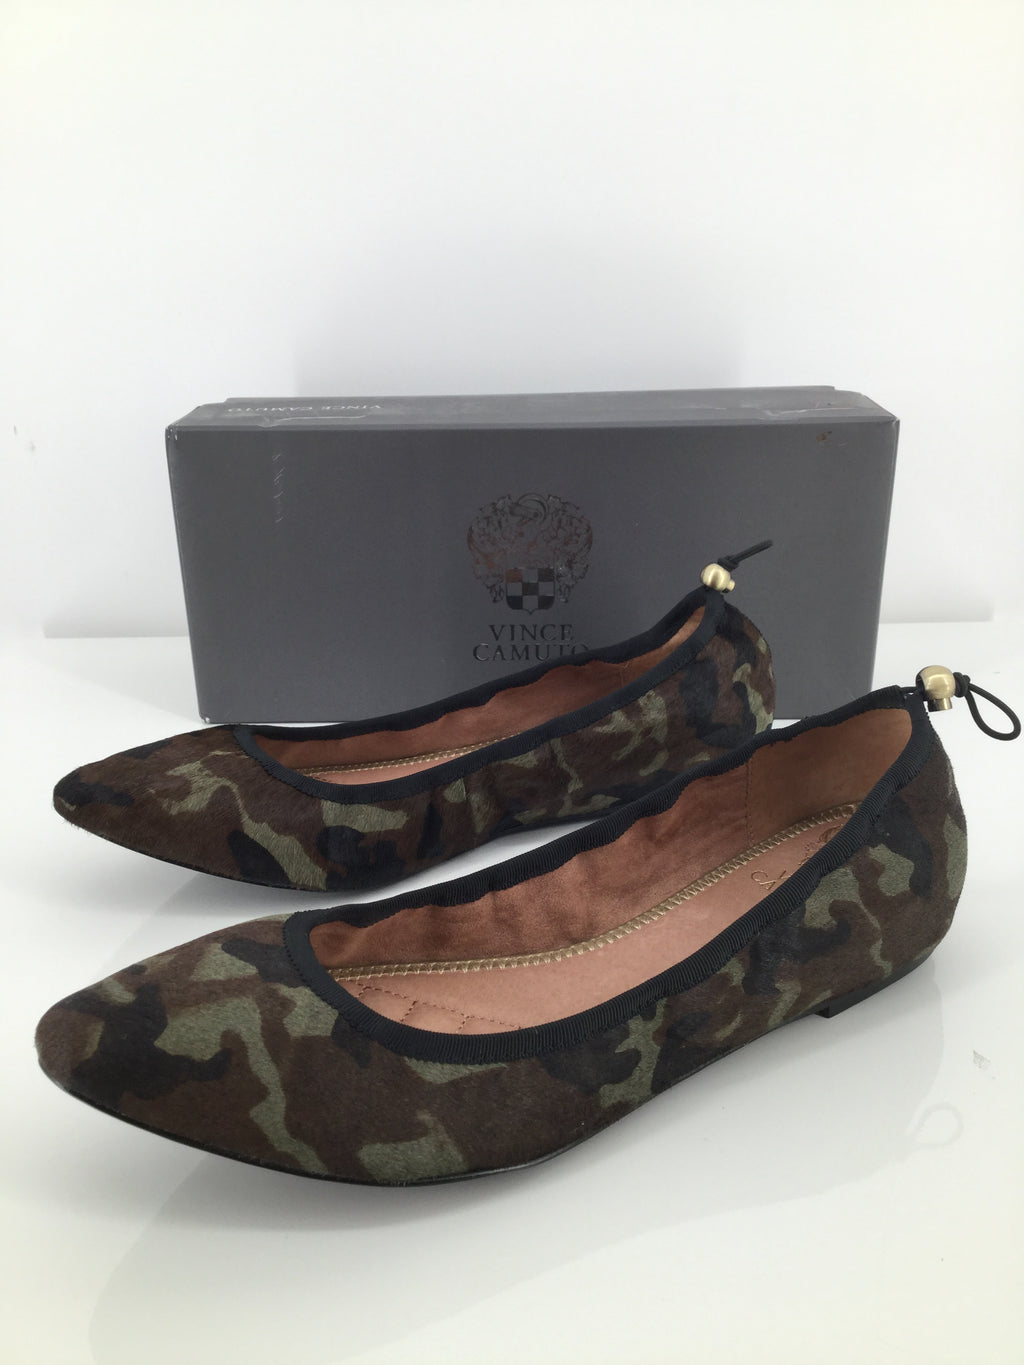 Vince Camuto Shoes Flats Size:9.5